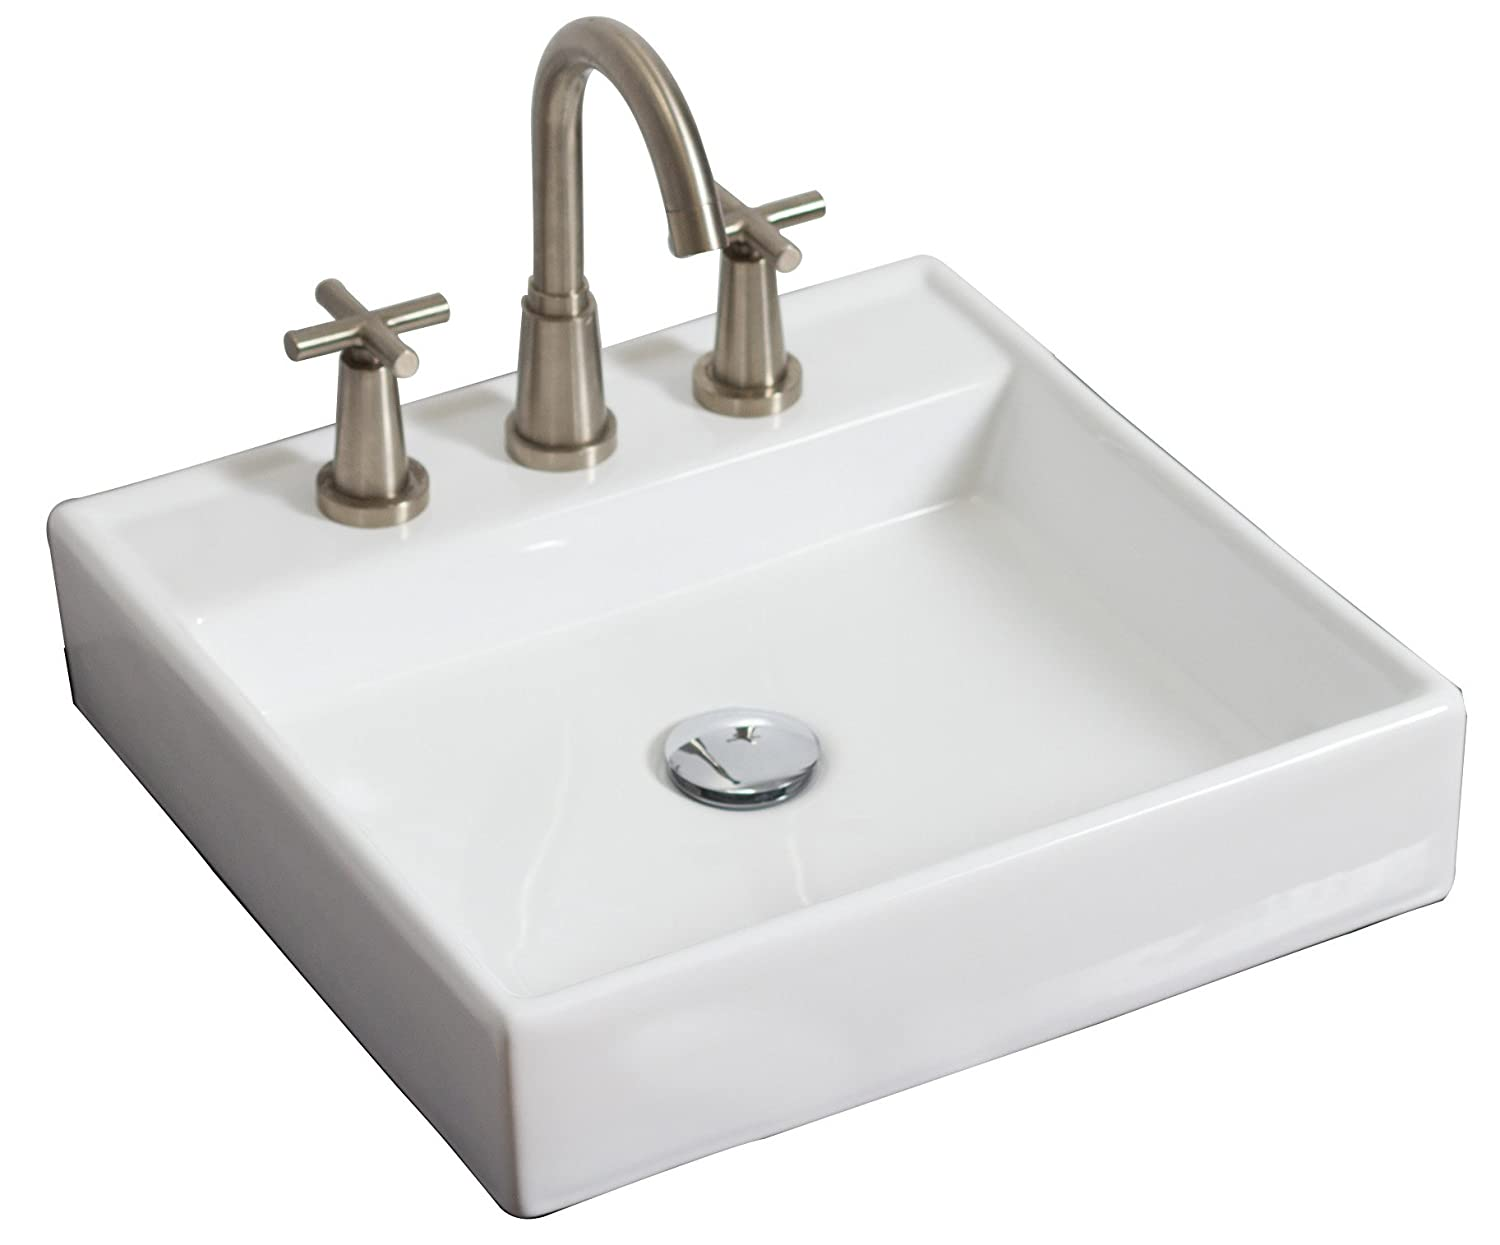 American Imaginations AI-14-597 Above Counter Square Vessel for 8-Inch OC Faucet, 17.5-Inch x 17.5-Inch, White IMG Imports Inc.